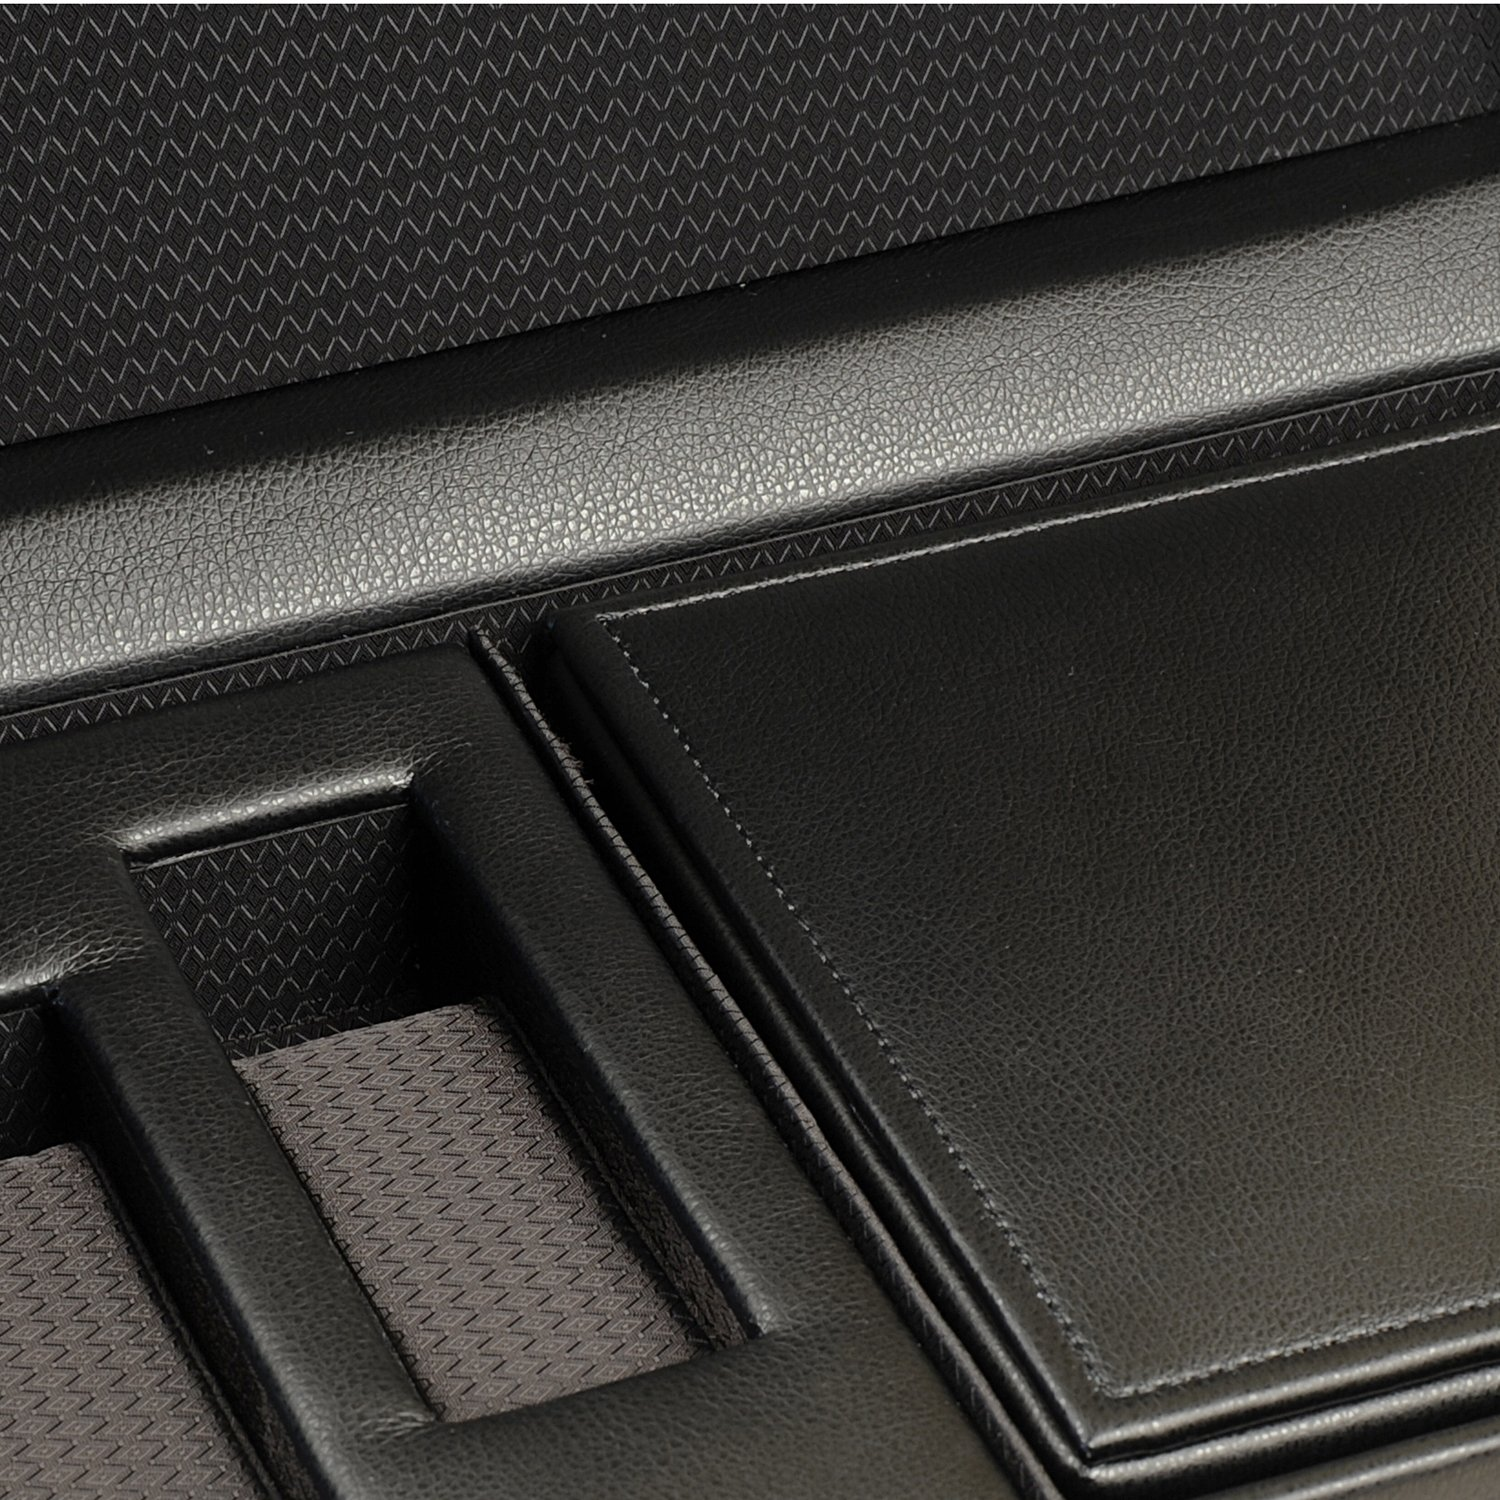 WOLF 457356 Roadster Triple Watch Winder with Cover and Storage, Black by WOLF (Image #4)